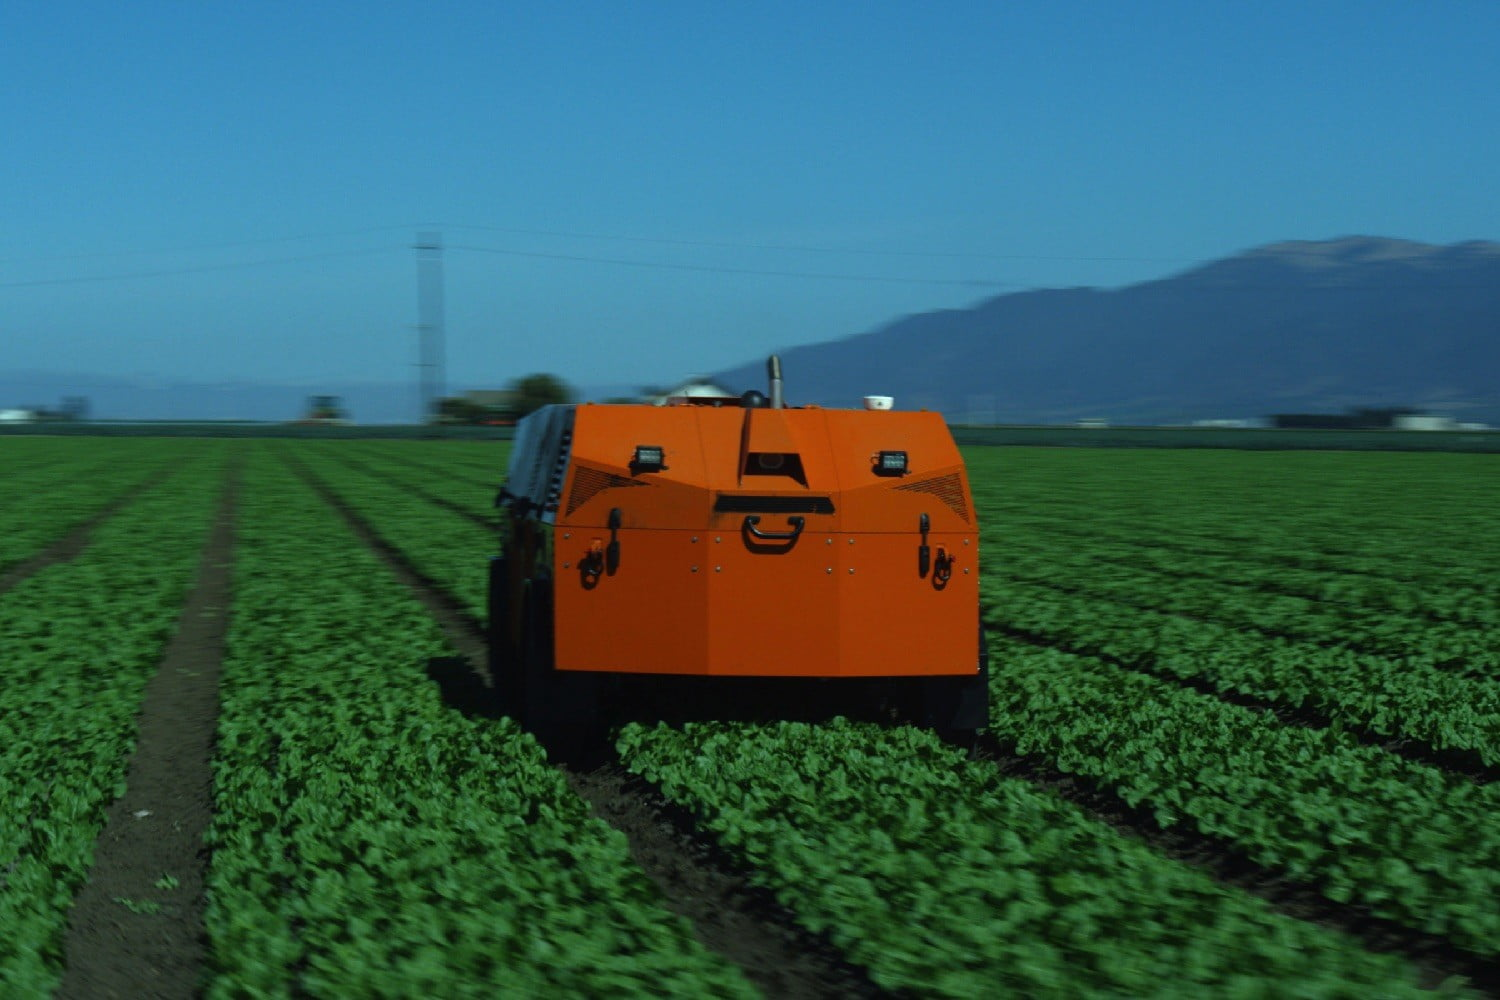 farmwise weed killing robot robot5